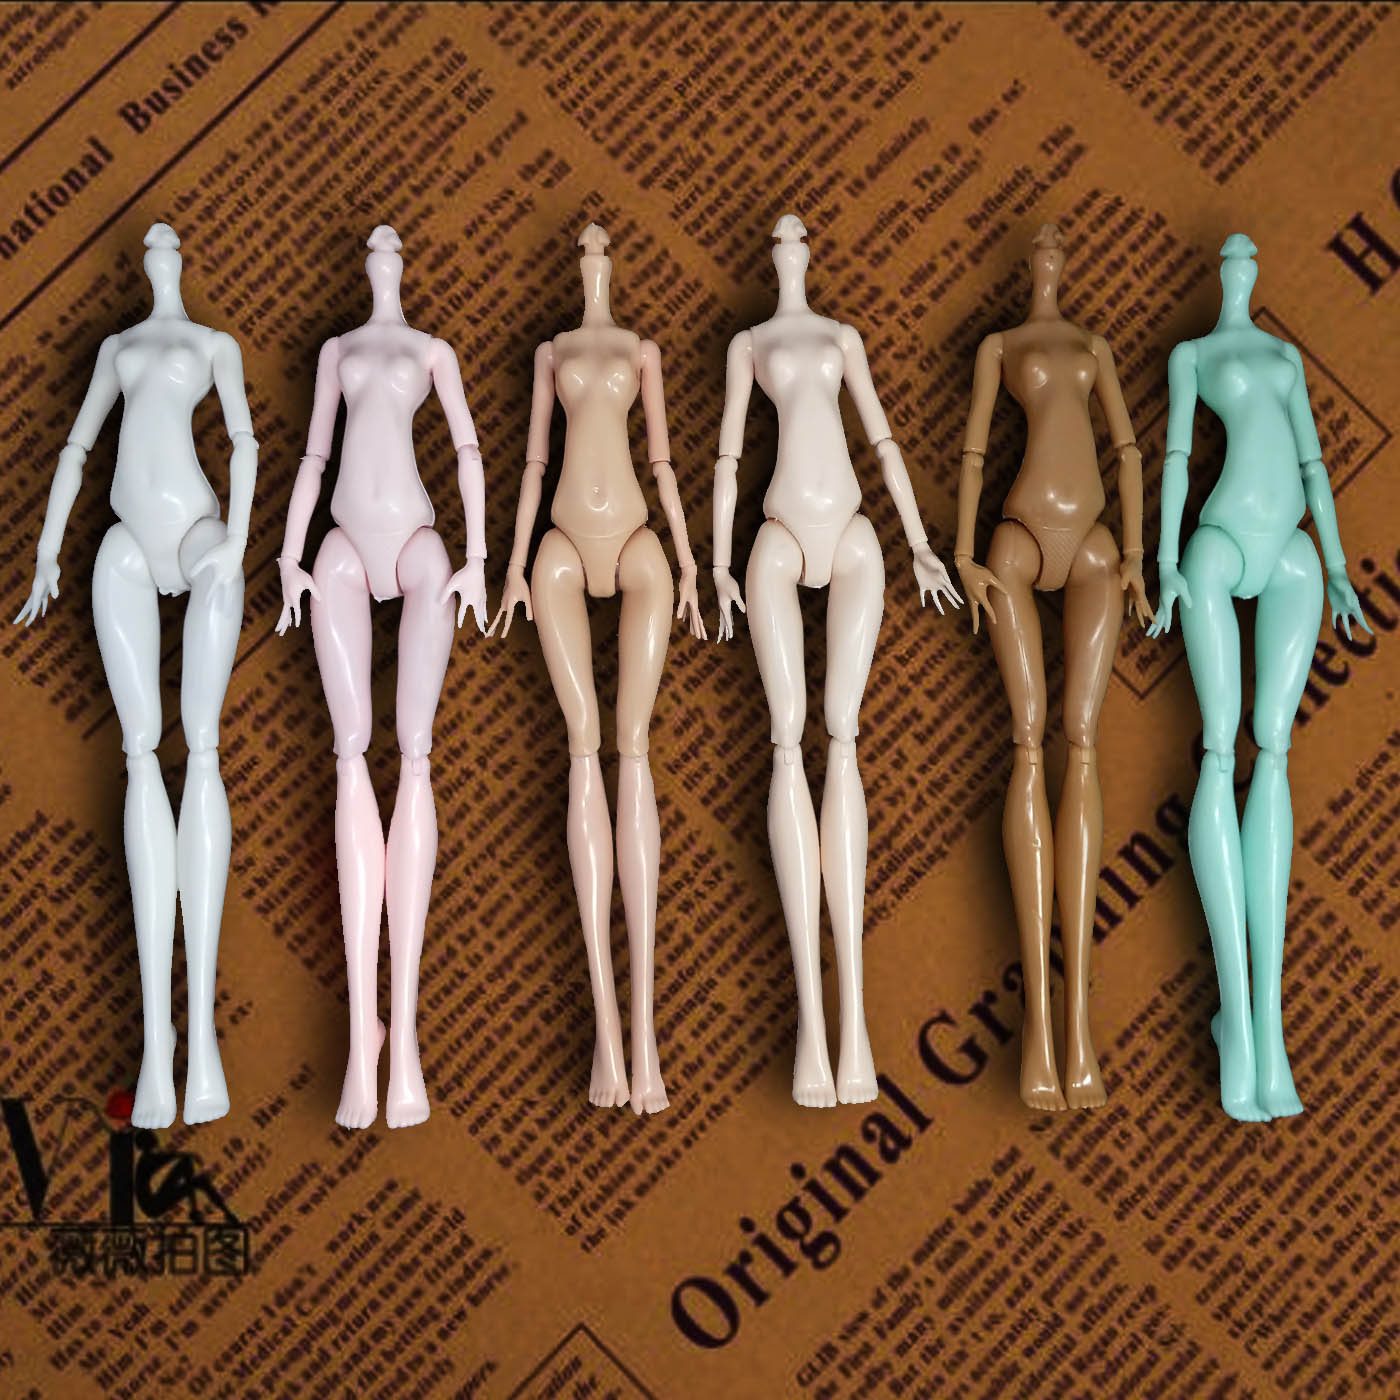 High Quality Imitation Demon Monster Dolls Naked Body Without Head For Monster Dolls Tinggi DIY Fairytales Dolls Bersama Putaran